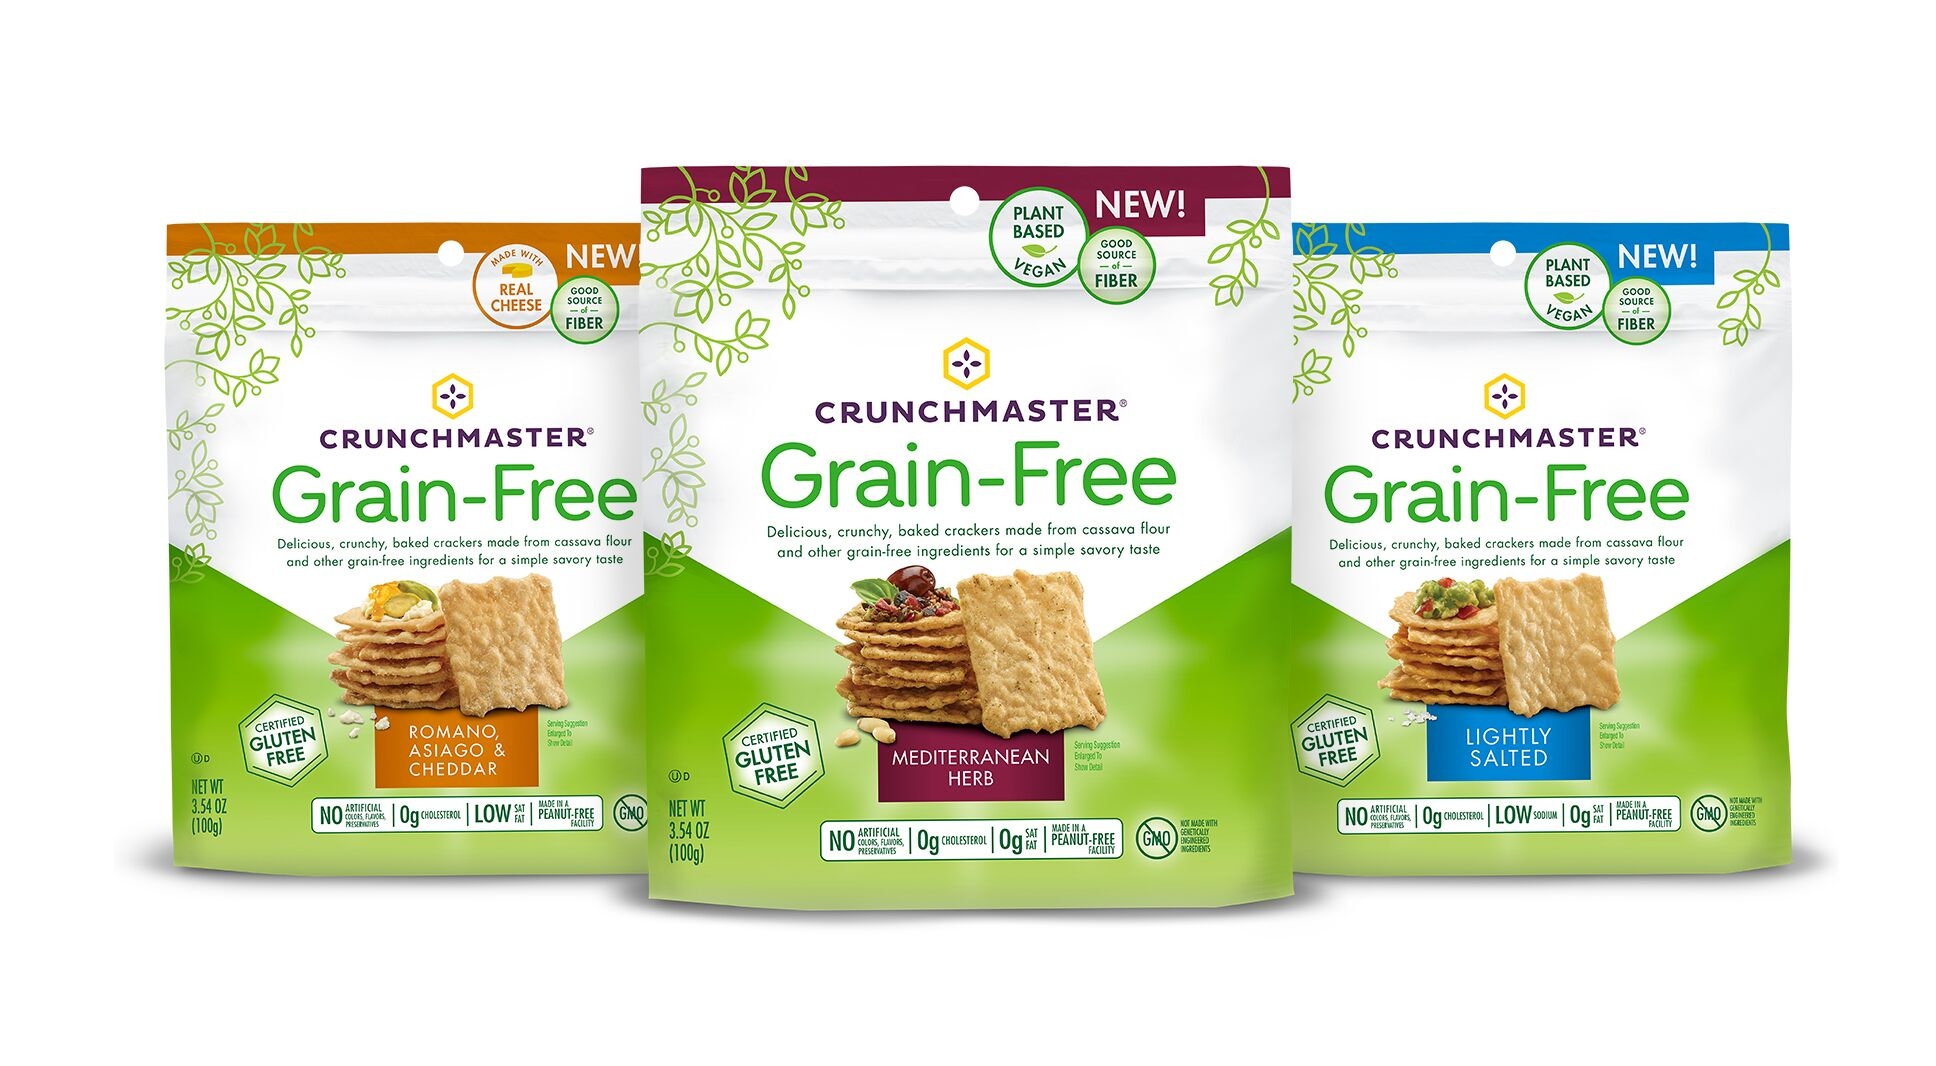 Crunchmaster Announces New Grain-Free Cracker Line